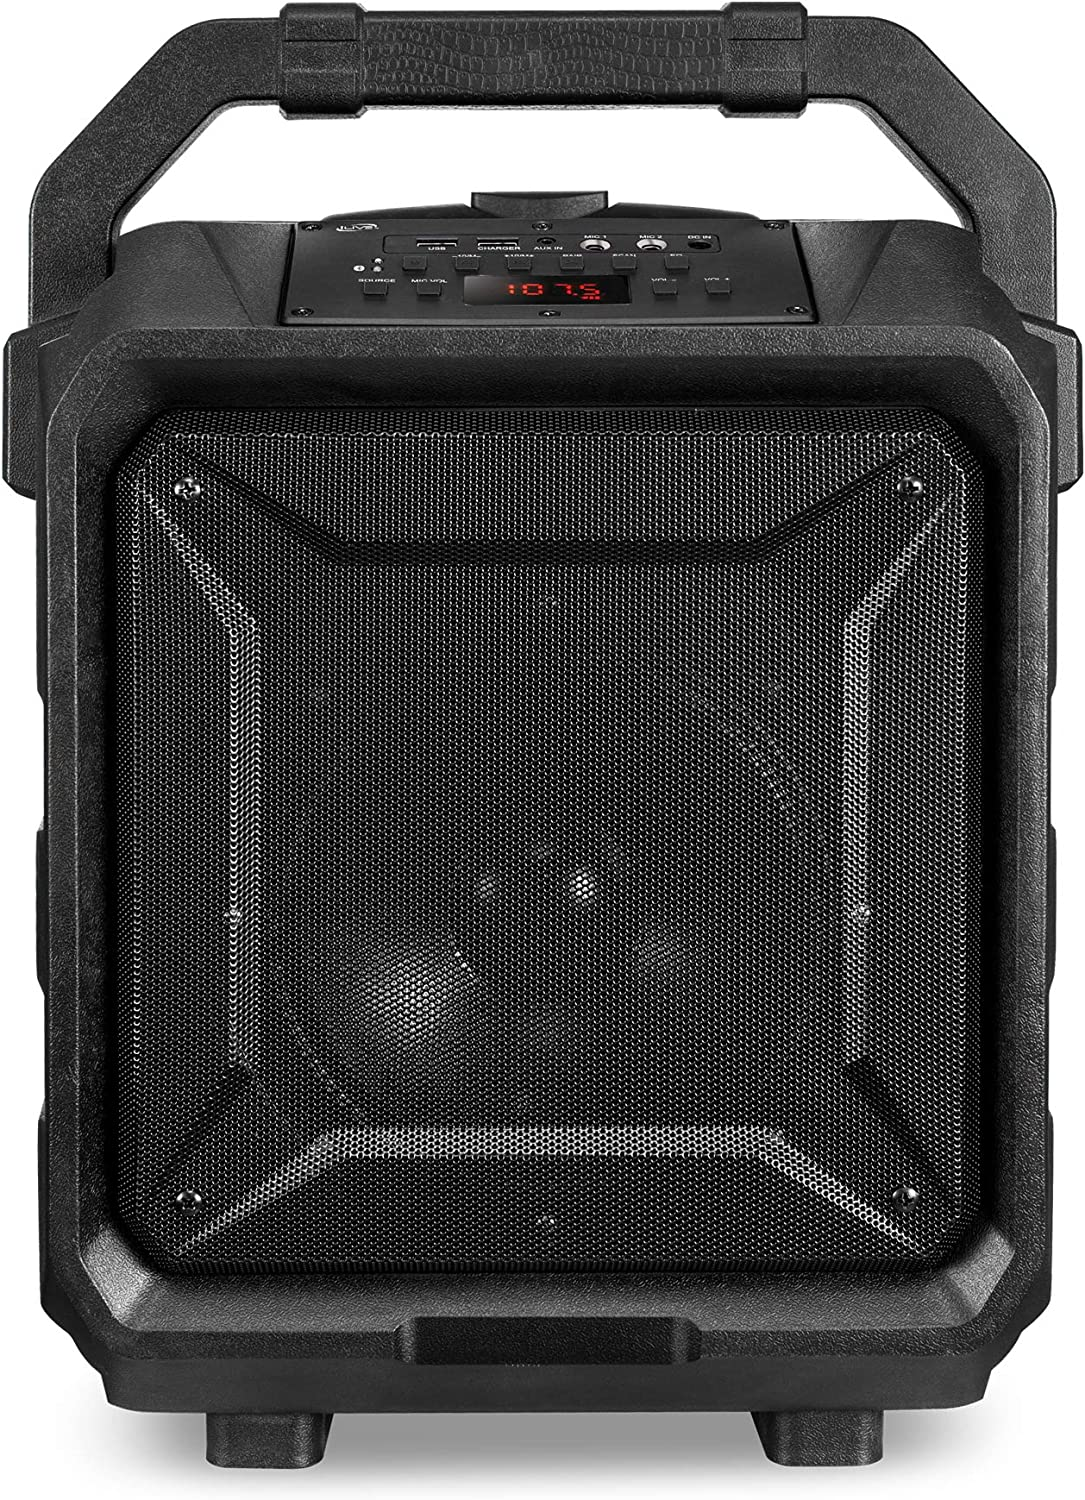 iLive ISB659B Wireless Tailgate Party Speaker, with Built-in Rechargeable Battery and Roller Wheels, Black